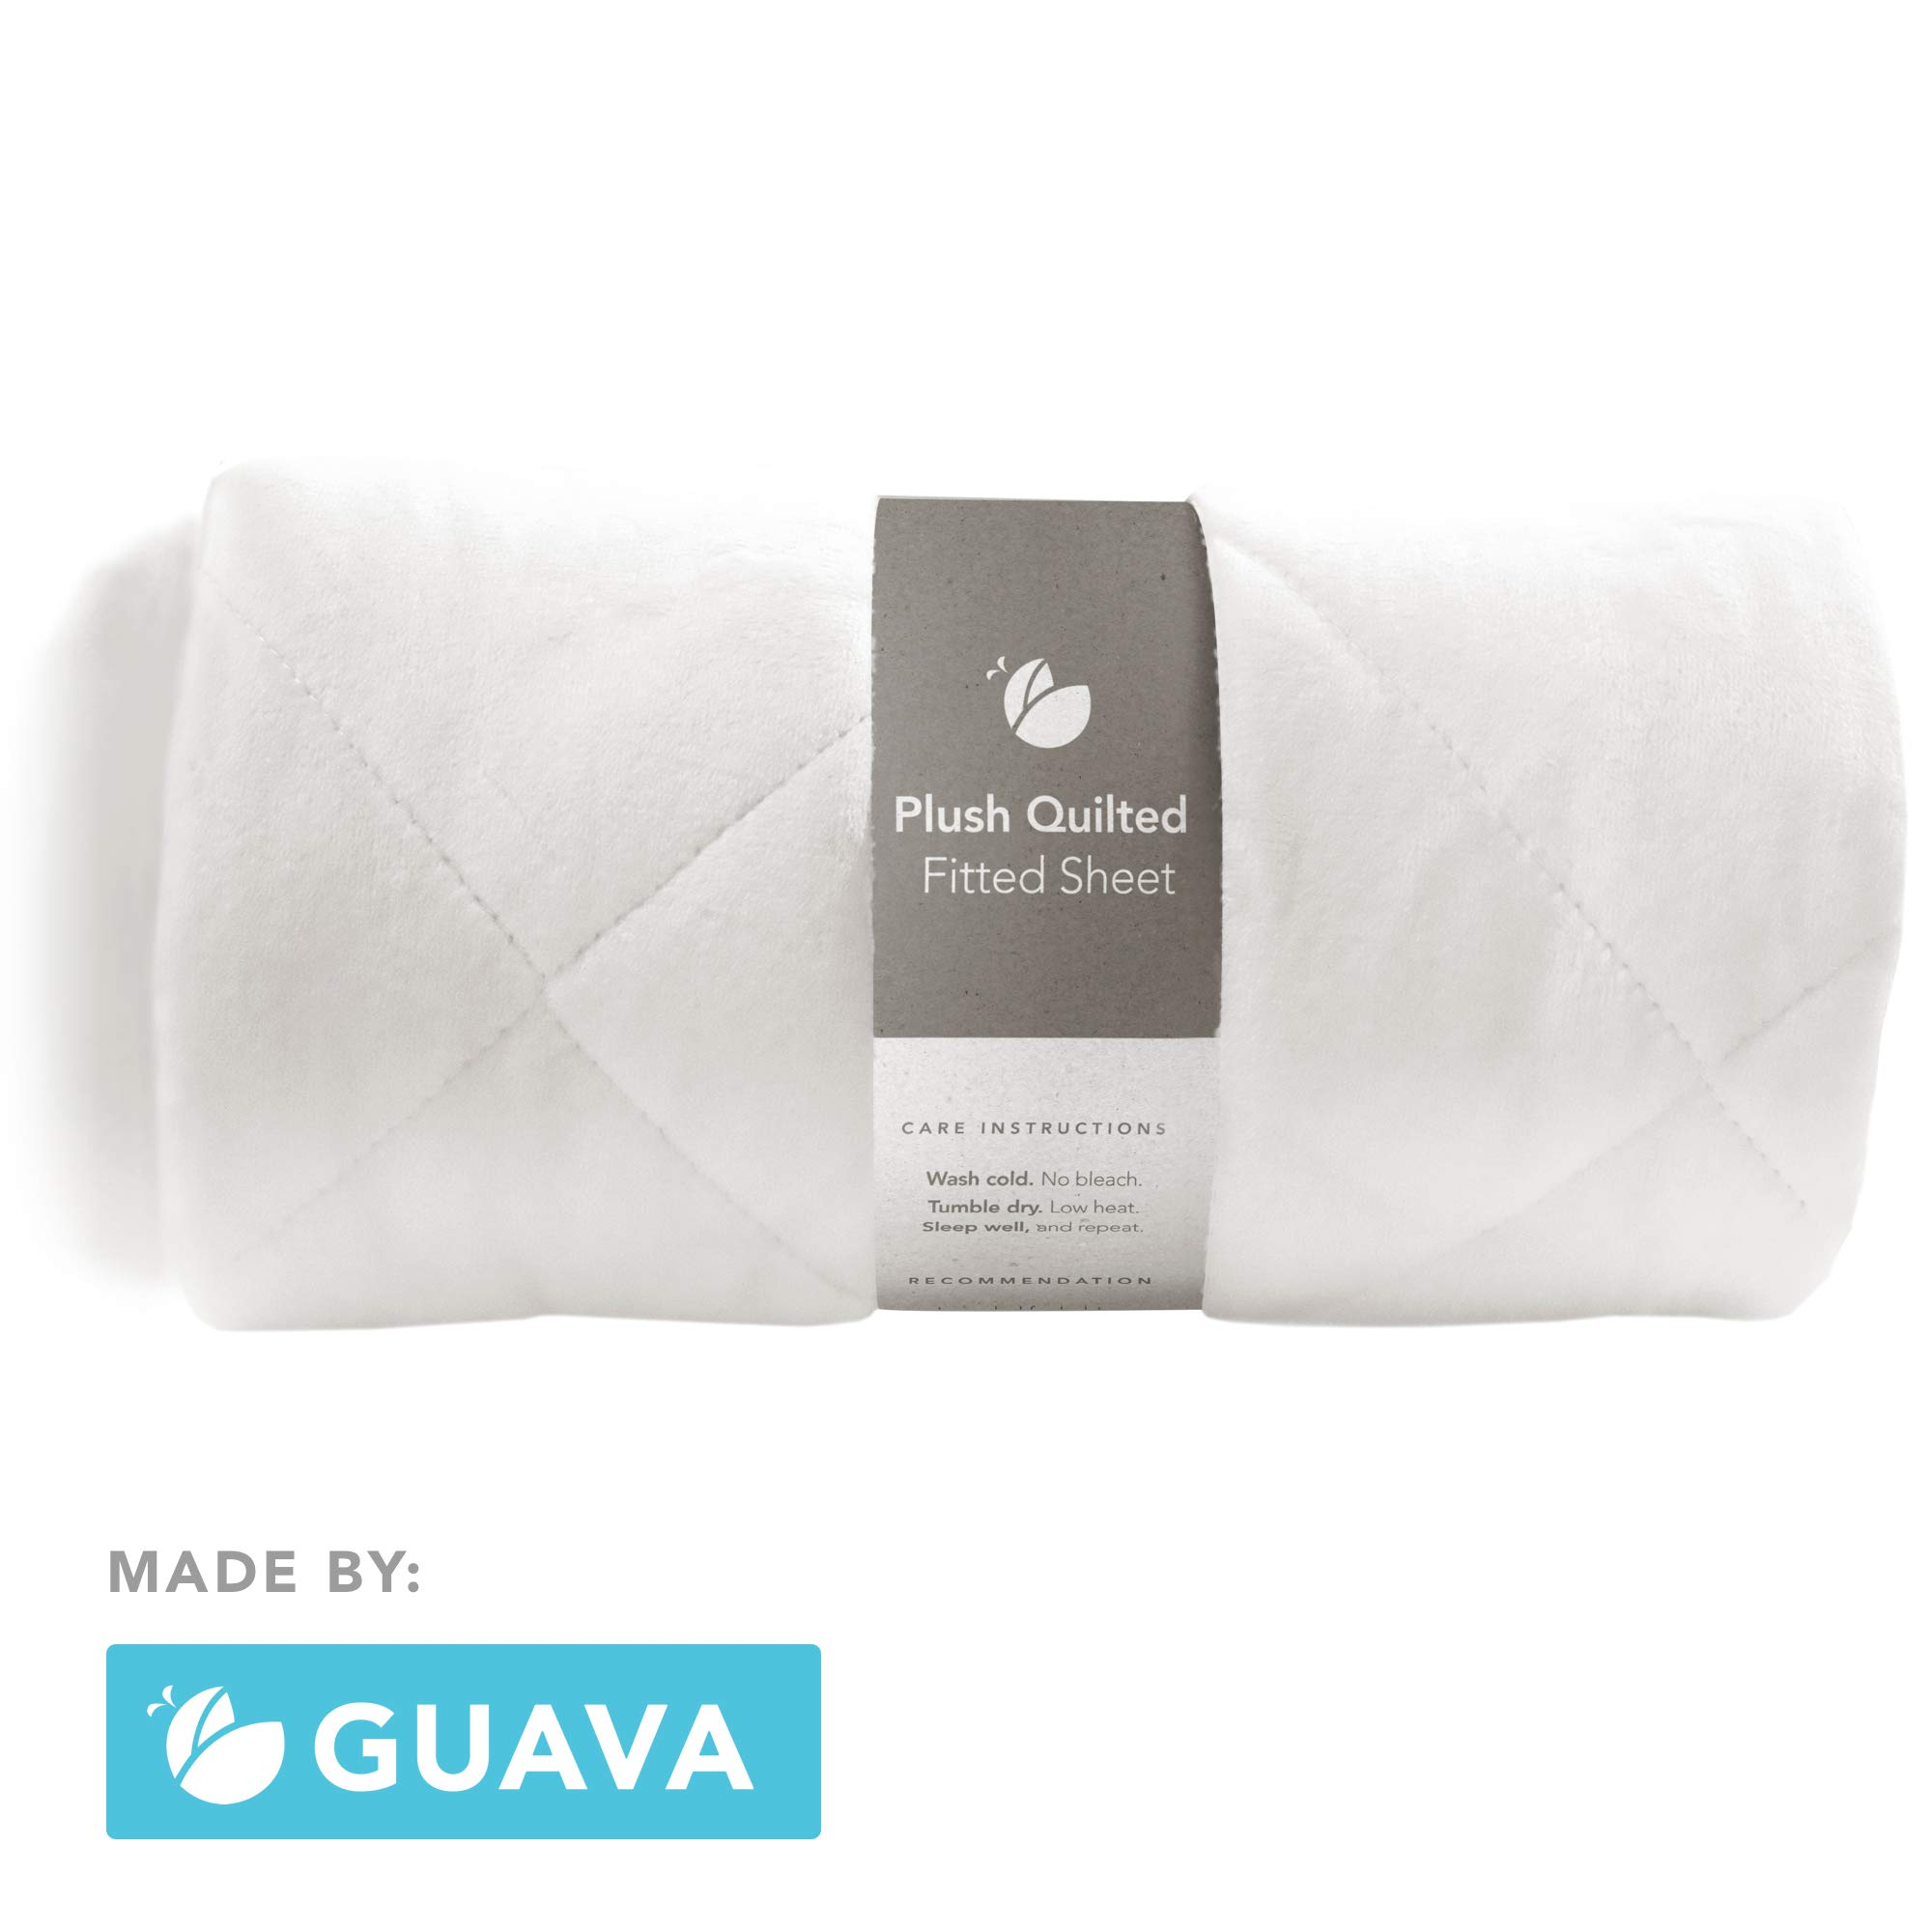 GUAVA FAMILY - Lotus Crib Plush Quilted Fitted Sheet | Designed for Perfect, Manufacturer-Approved Fit, Soft & Safe for 1 Yr & Older, Unisex, Boys & Girls - Fits BOTH Velcro & Buckle Versions (White) by Guava Family